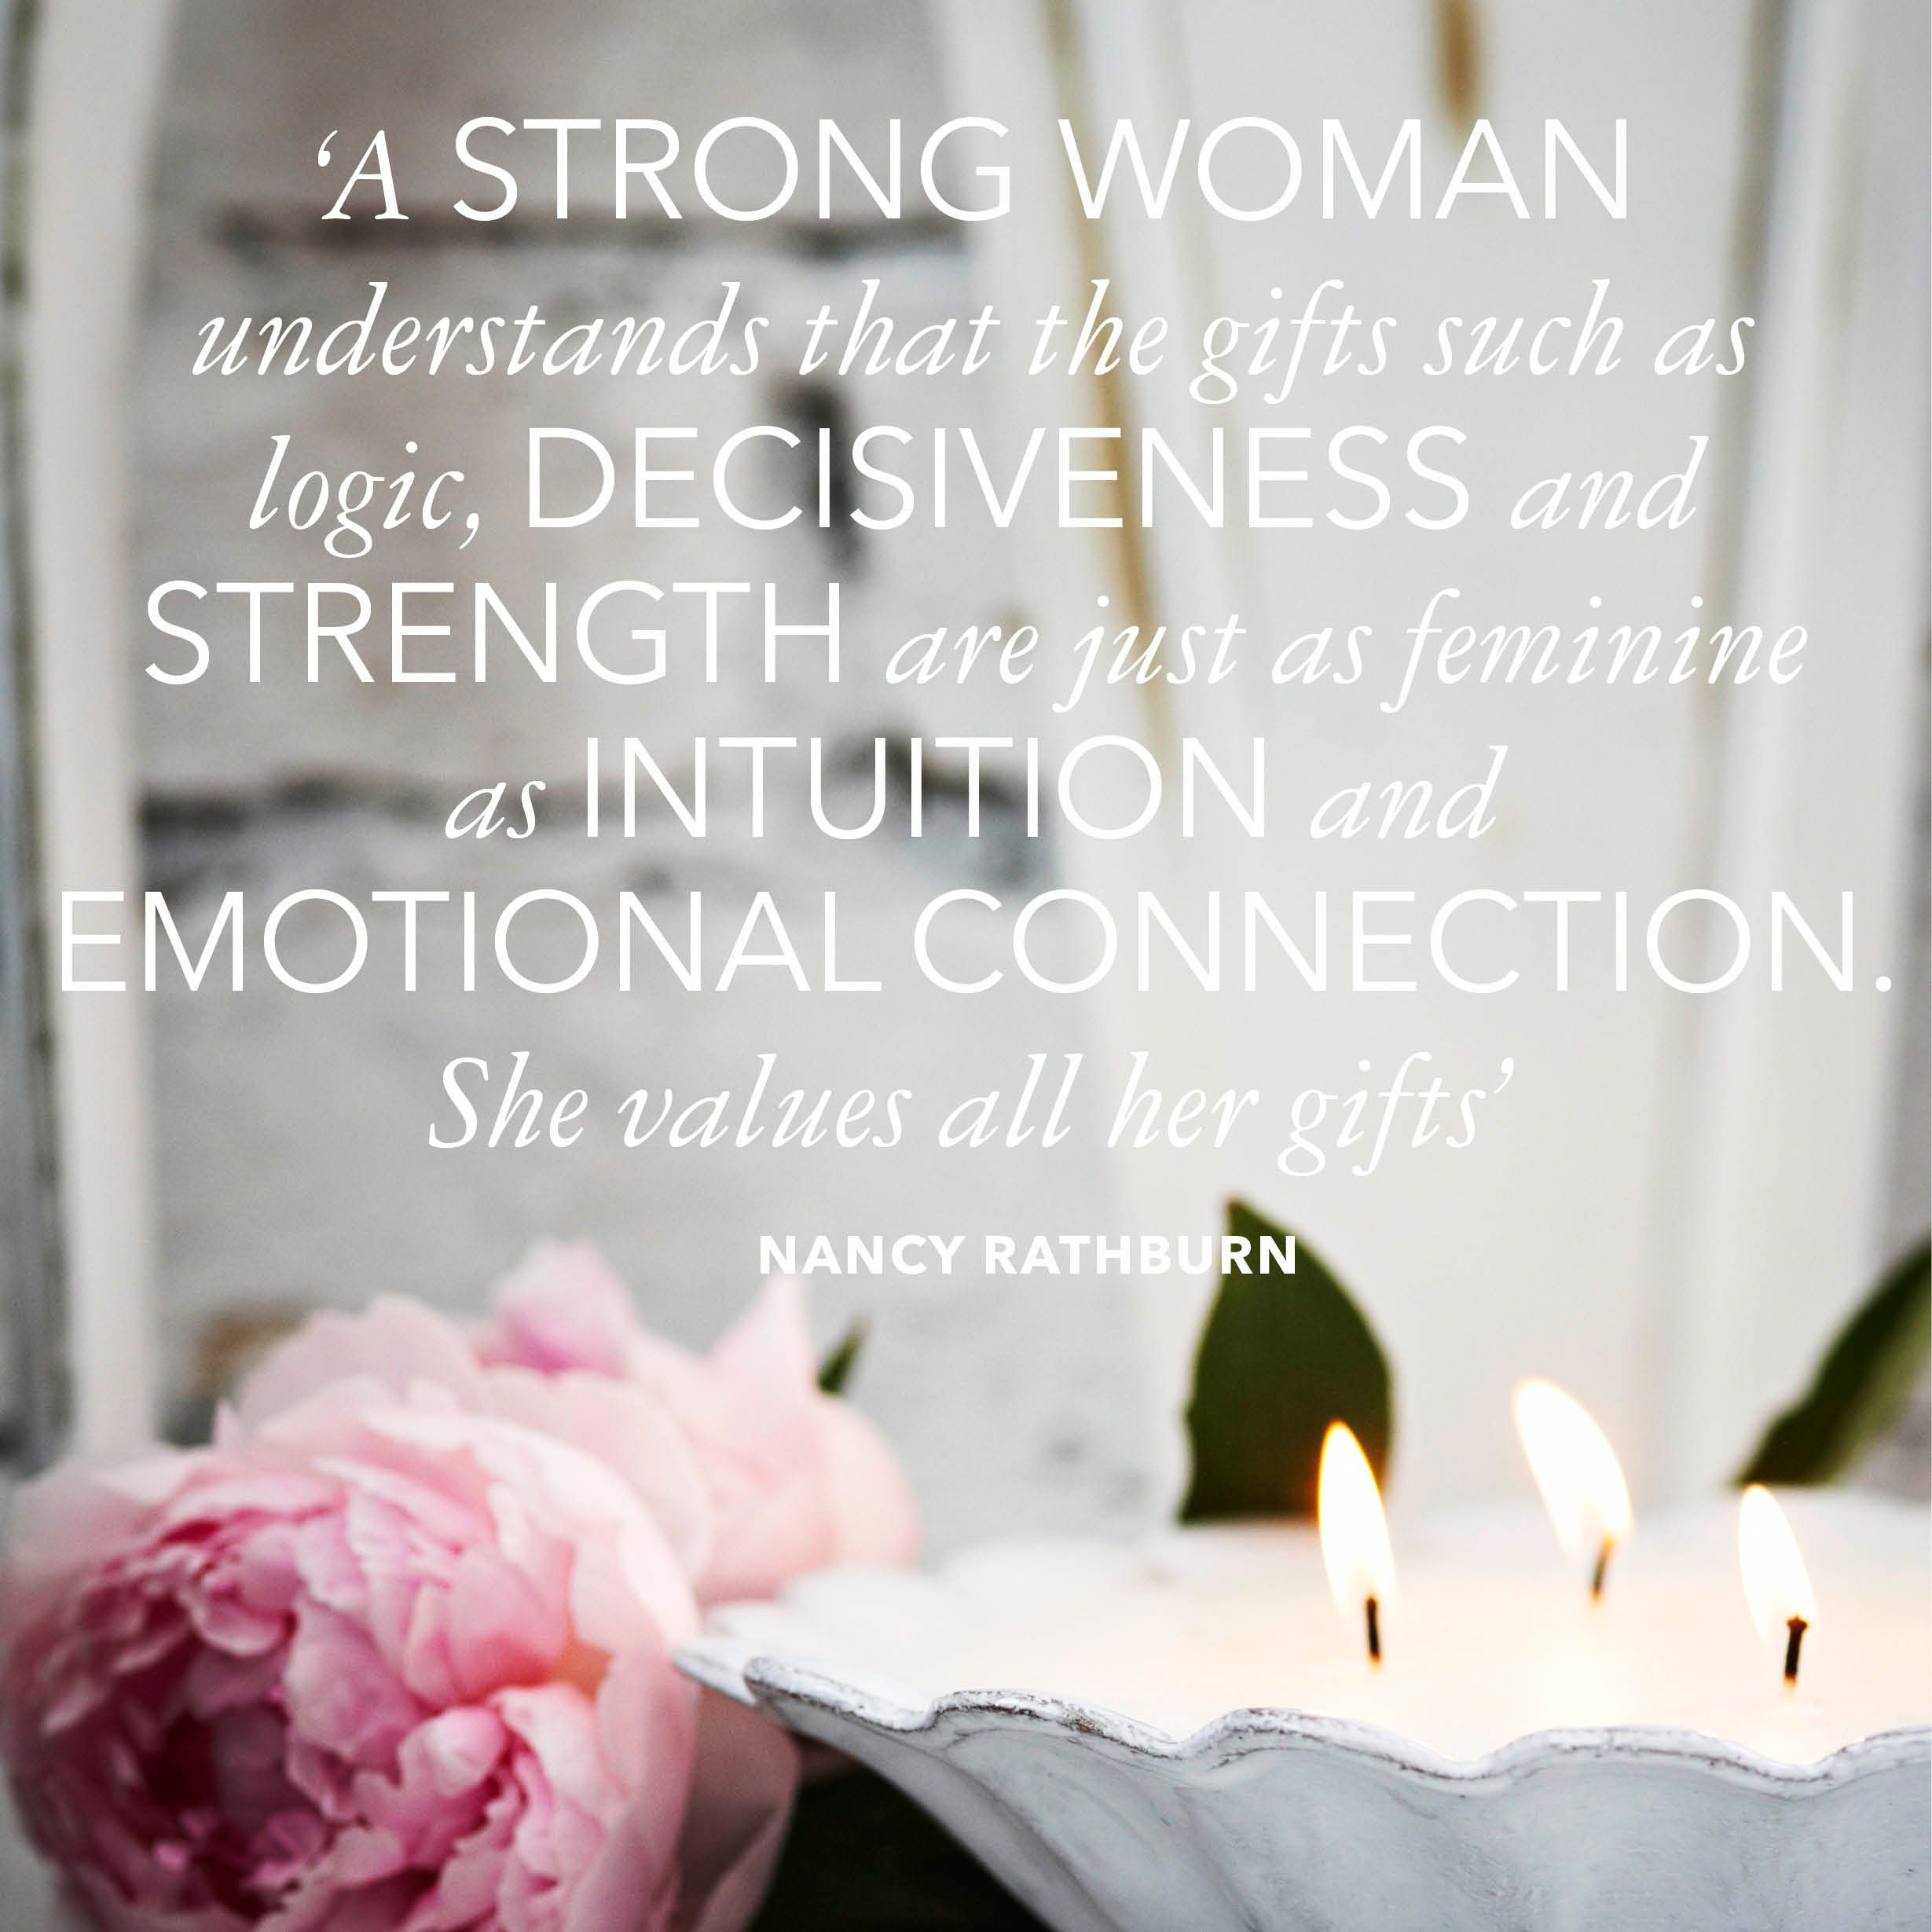 Inspiring quotes for International Women's Day